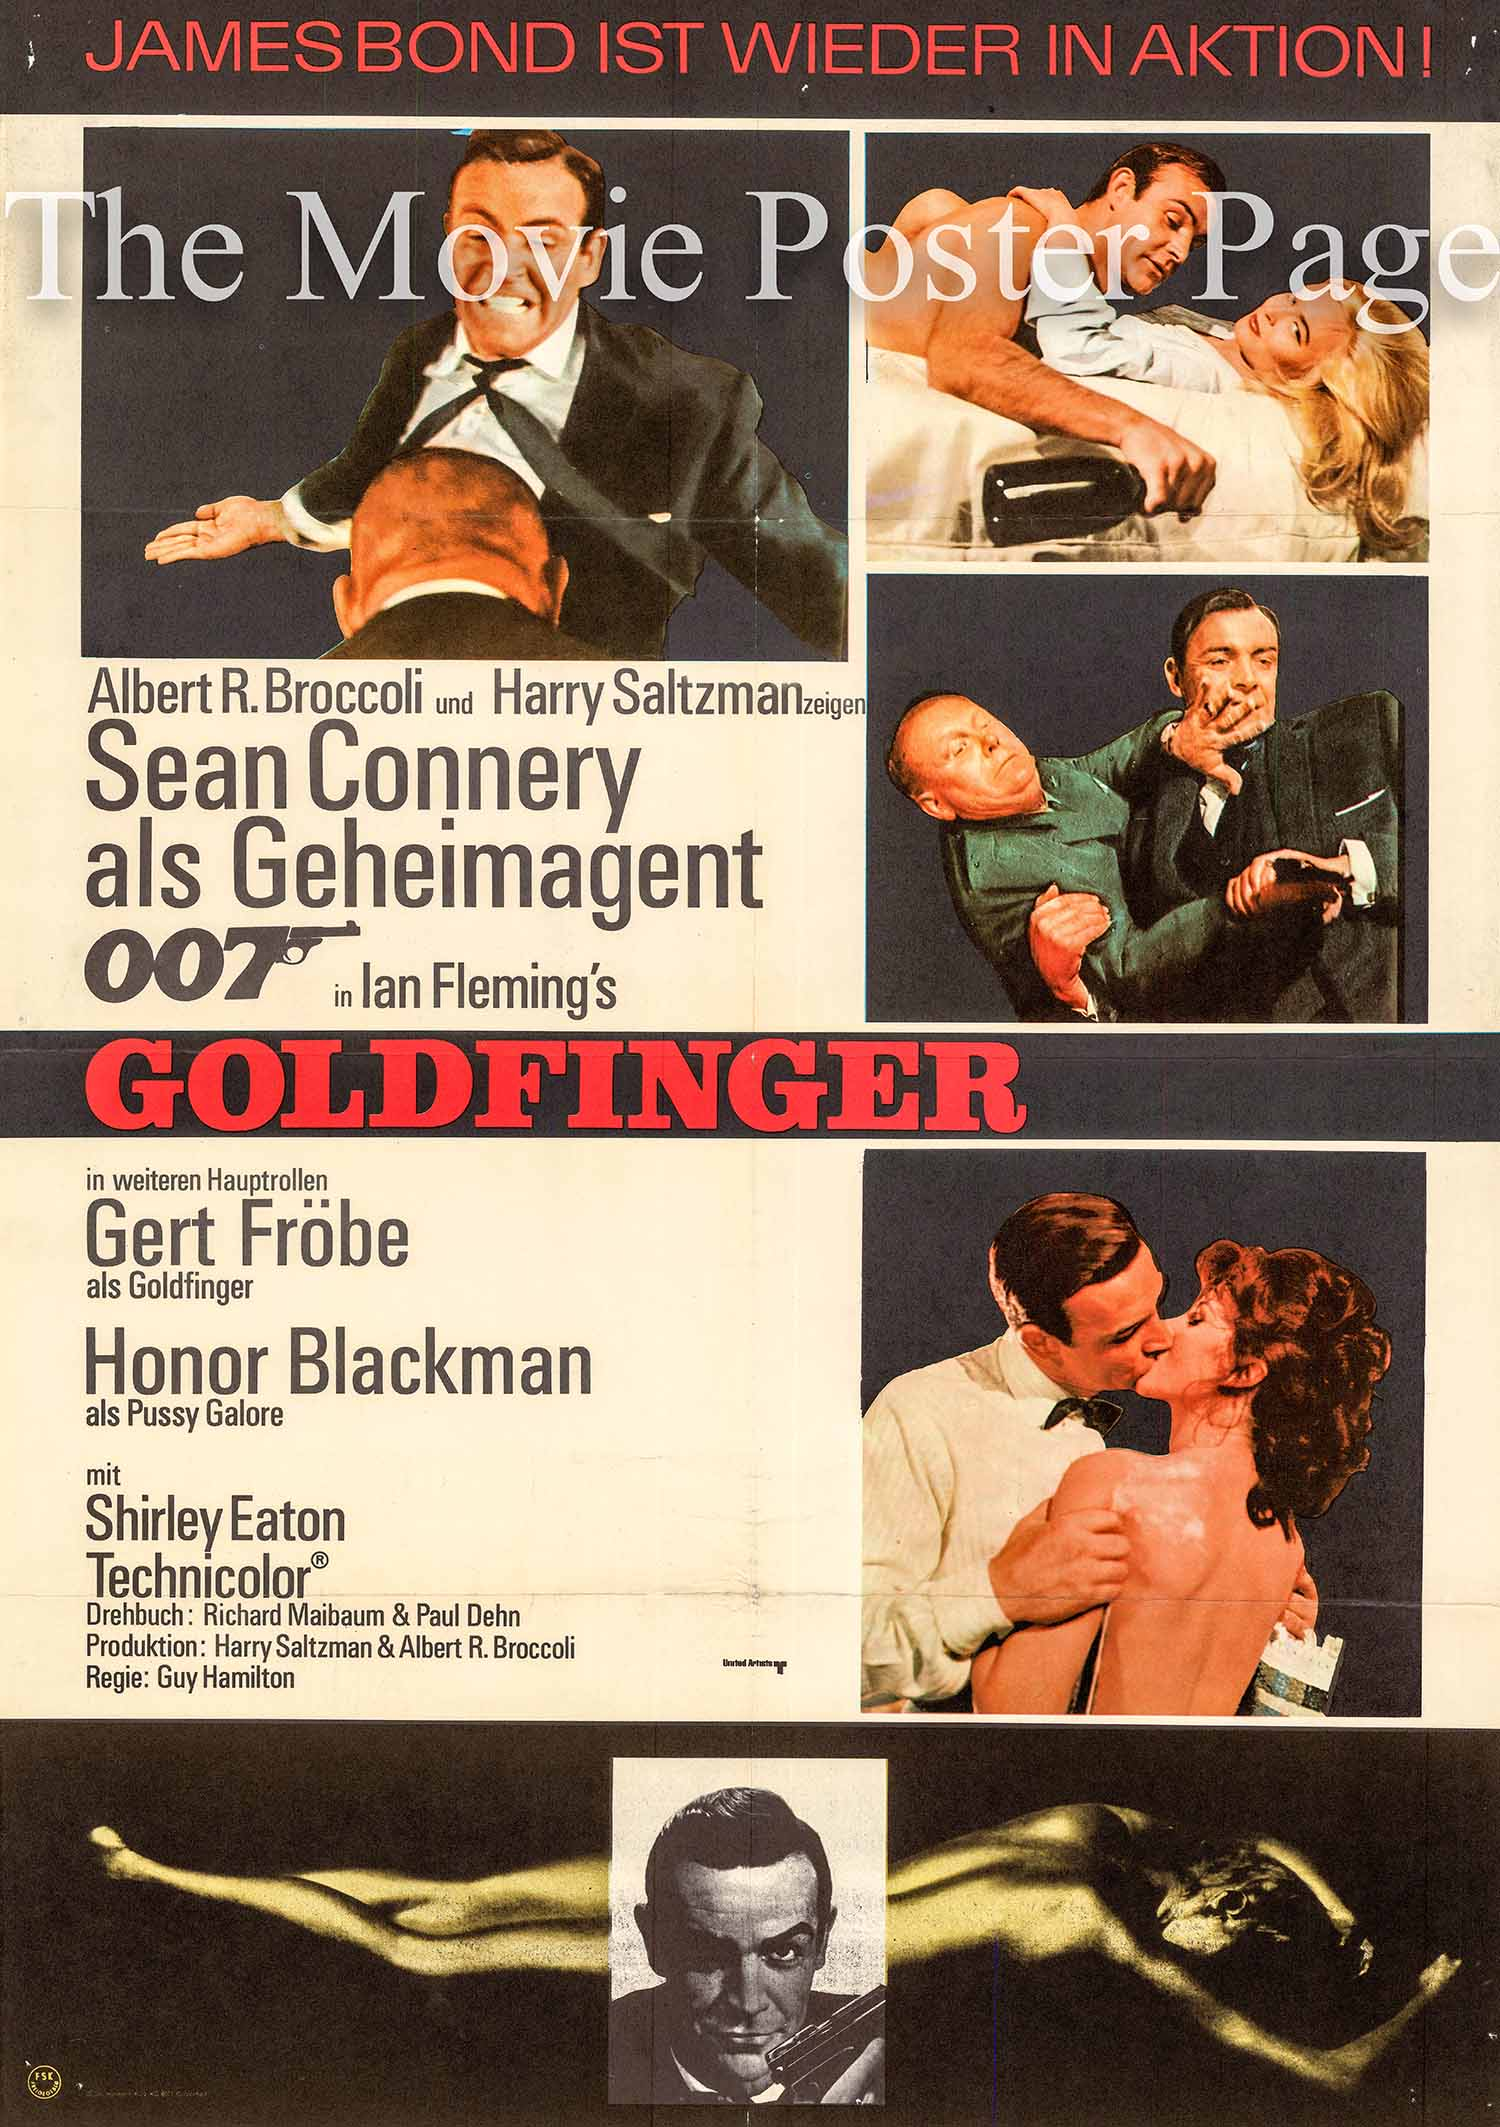 Pictured is a German one-sheet promotional poster made for a 1967 rerelease of the 1964 Guy Hamilton film Goldfinger starring Sean Connery as James Bond.